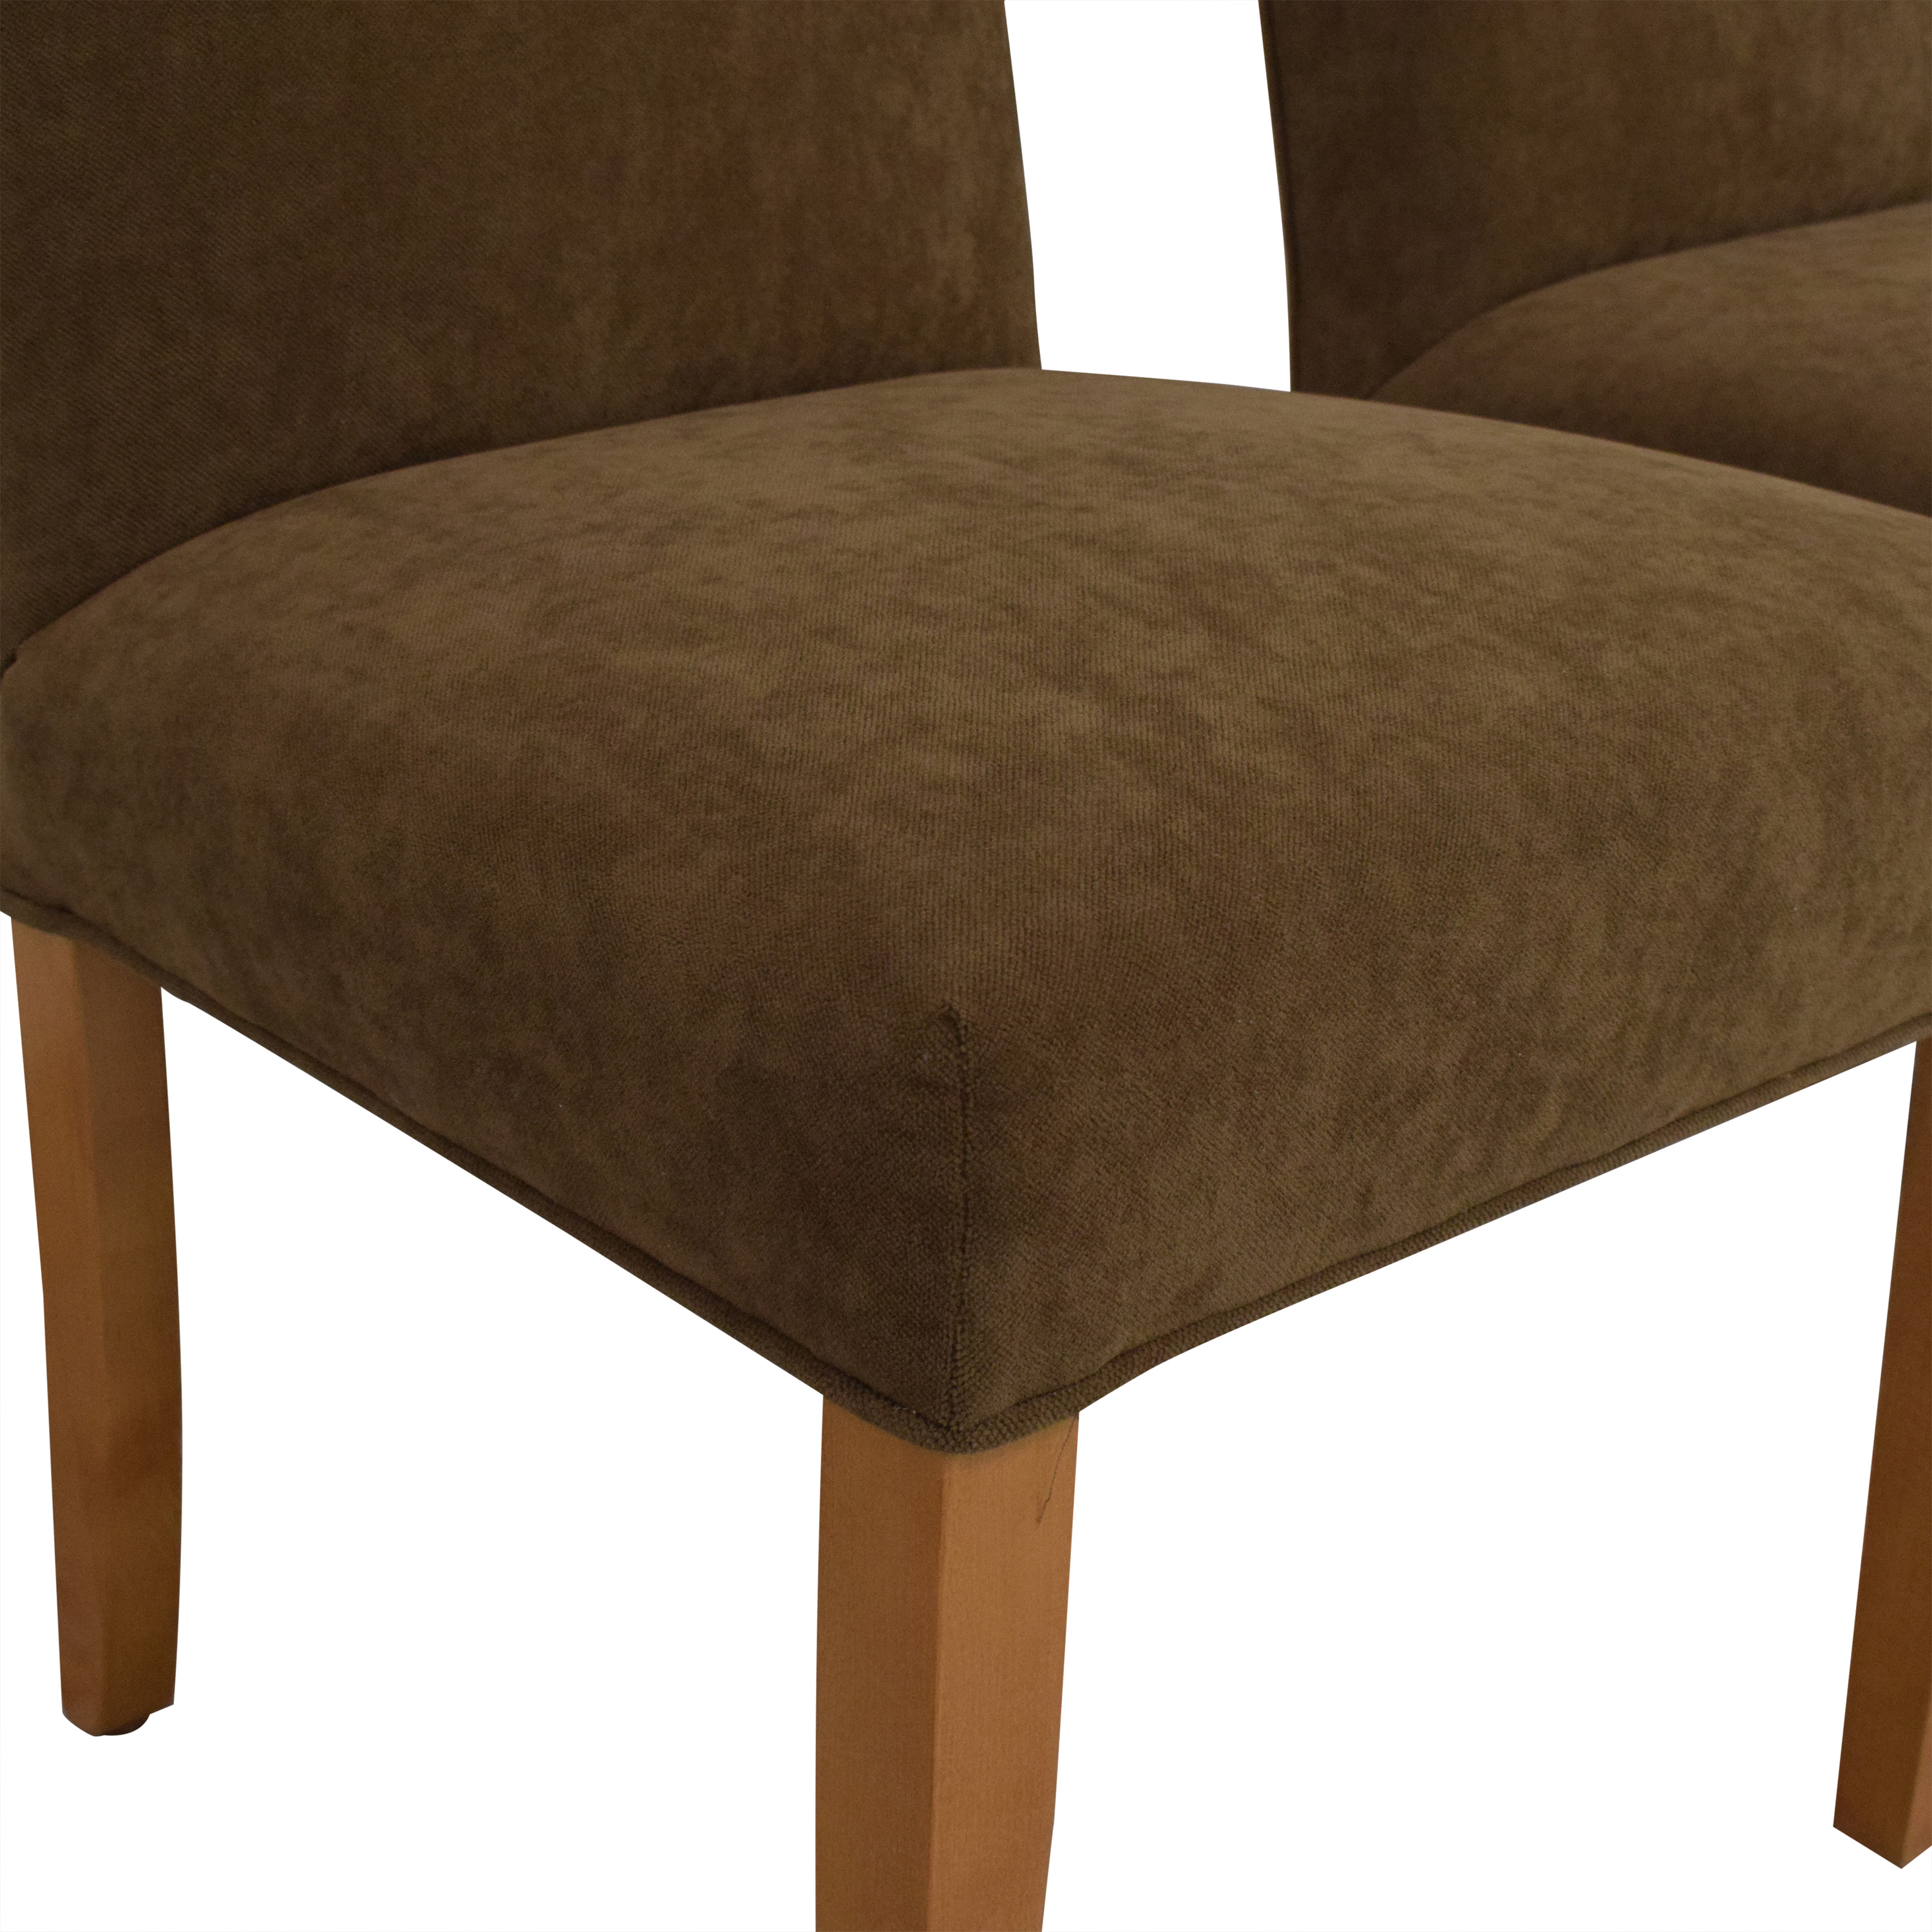 Crate & Barrel Crate & Barrel Miles Dining Chairs dimensions